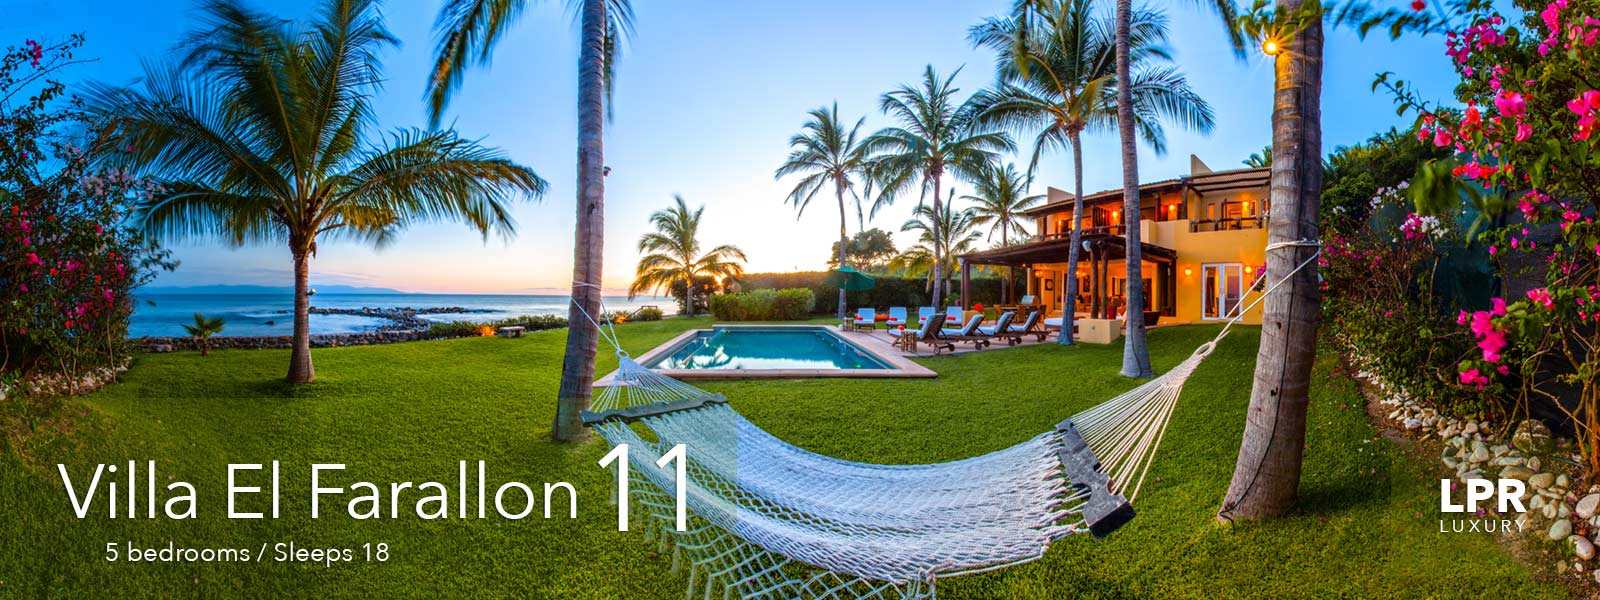 Villa El Farallon 11 - Luxury Beachfront Punta de Mita Real Estate